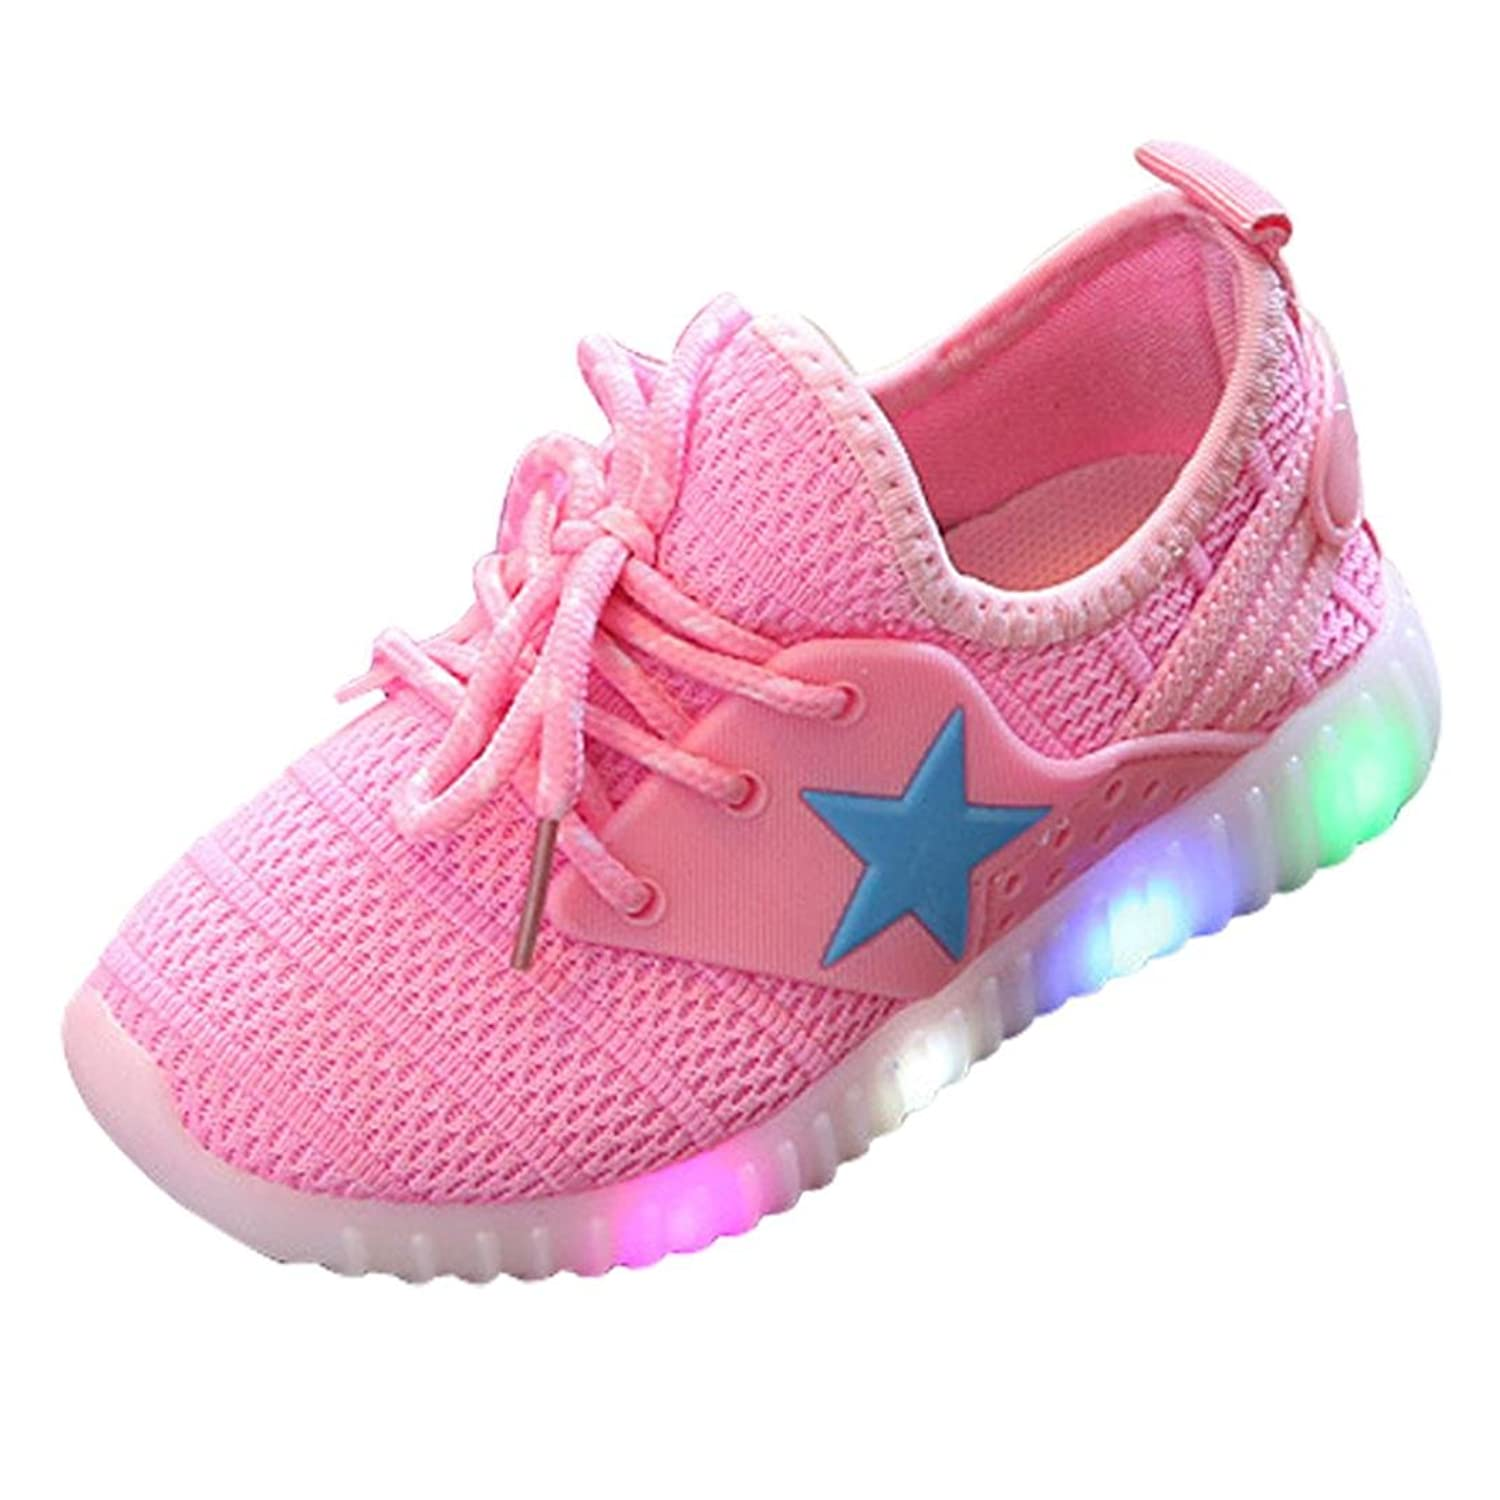 Amiley Toddler Baby Sneakers Star Luminous Child Casual Colorful Light Outdoor Shoes